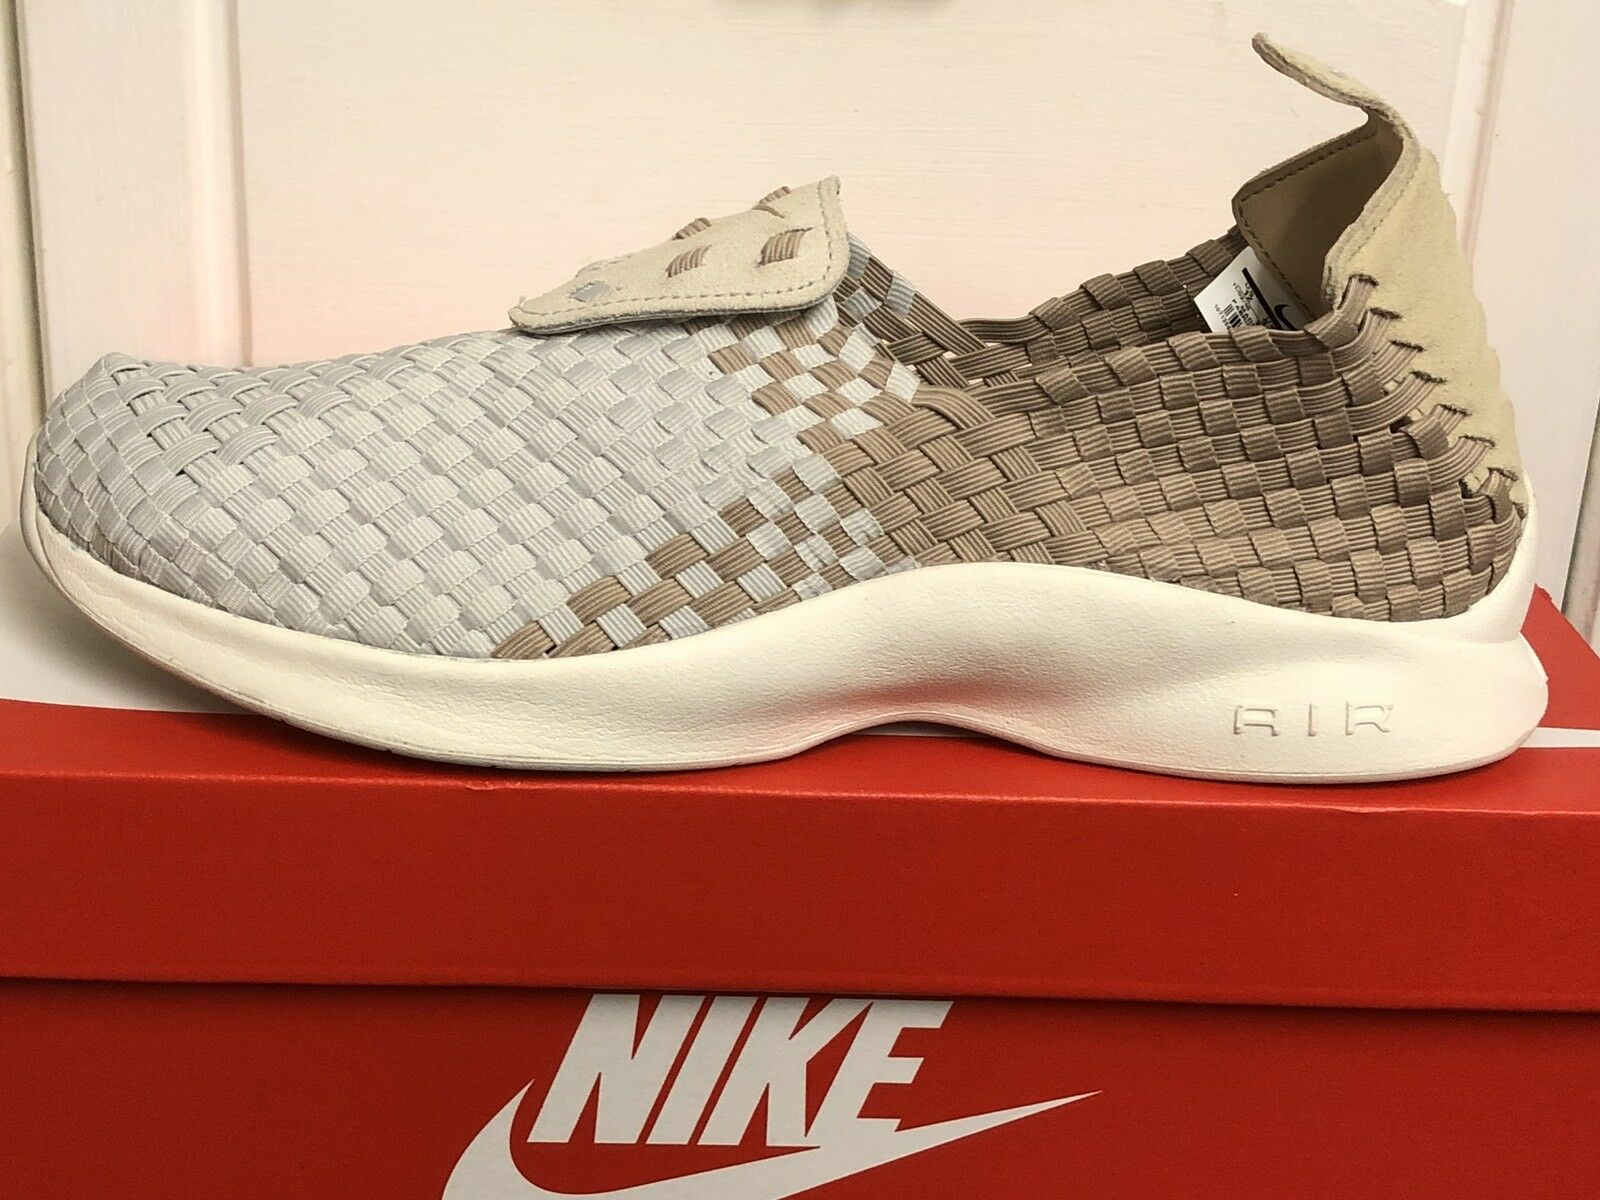 NIKE TRAINERS AIR WOVEN homme Femme TRAINERS NIKE SNEAKERS chaussures9,5 Eur 44,5 9d408b